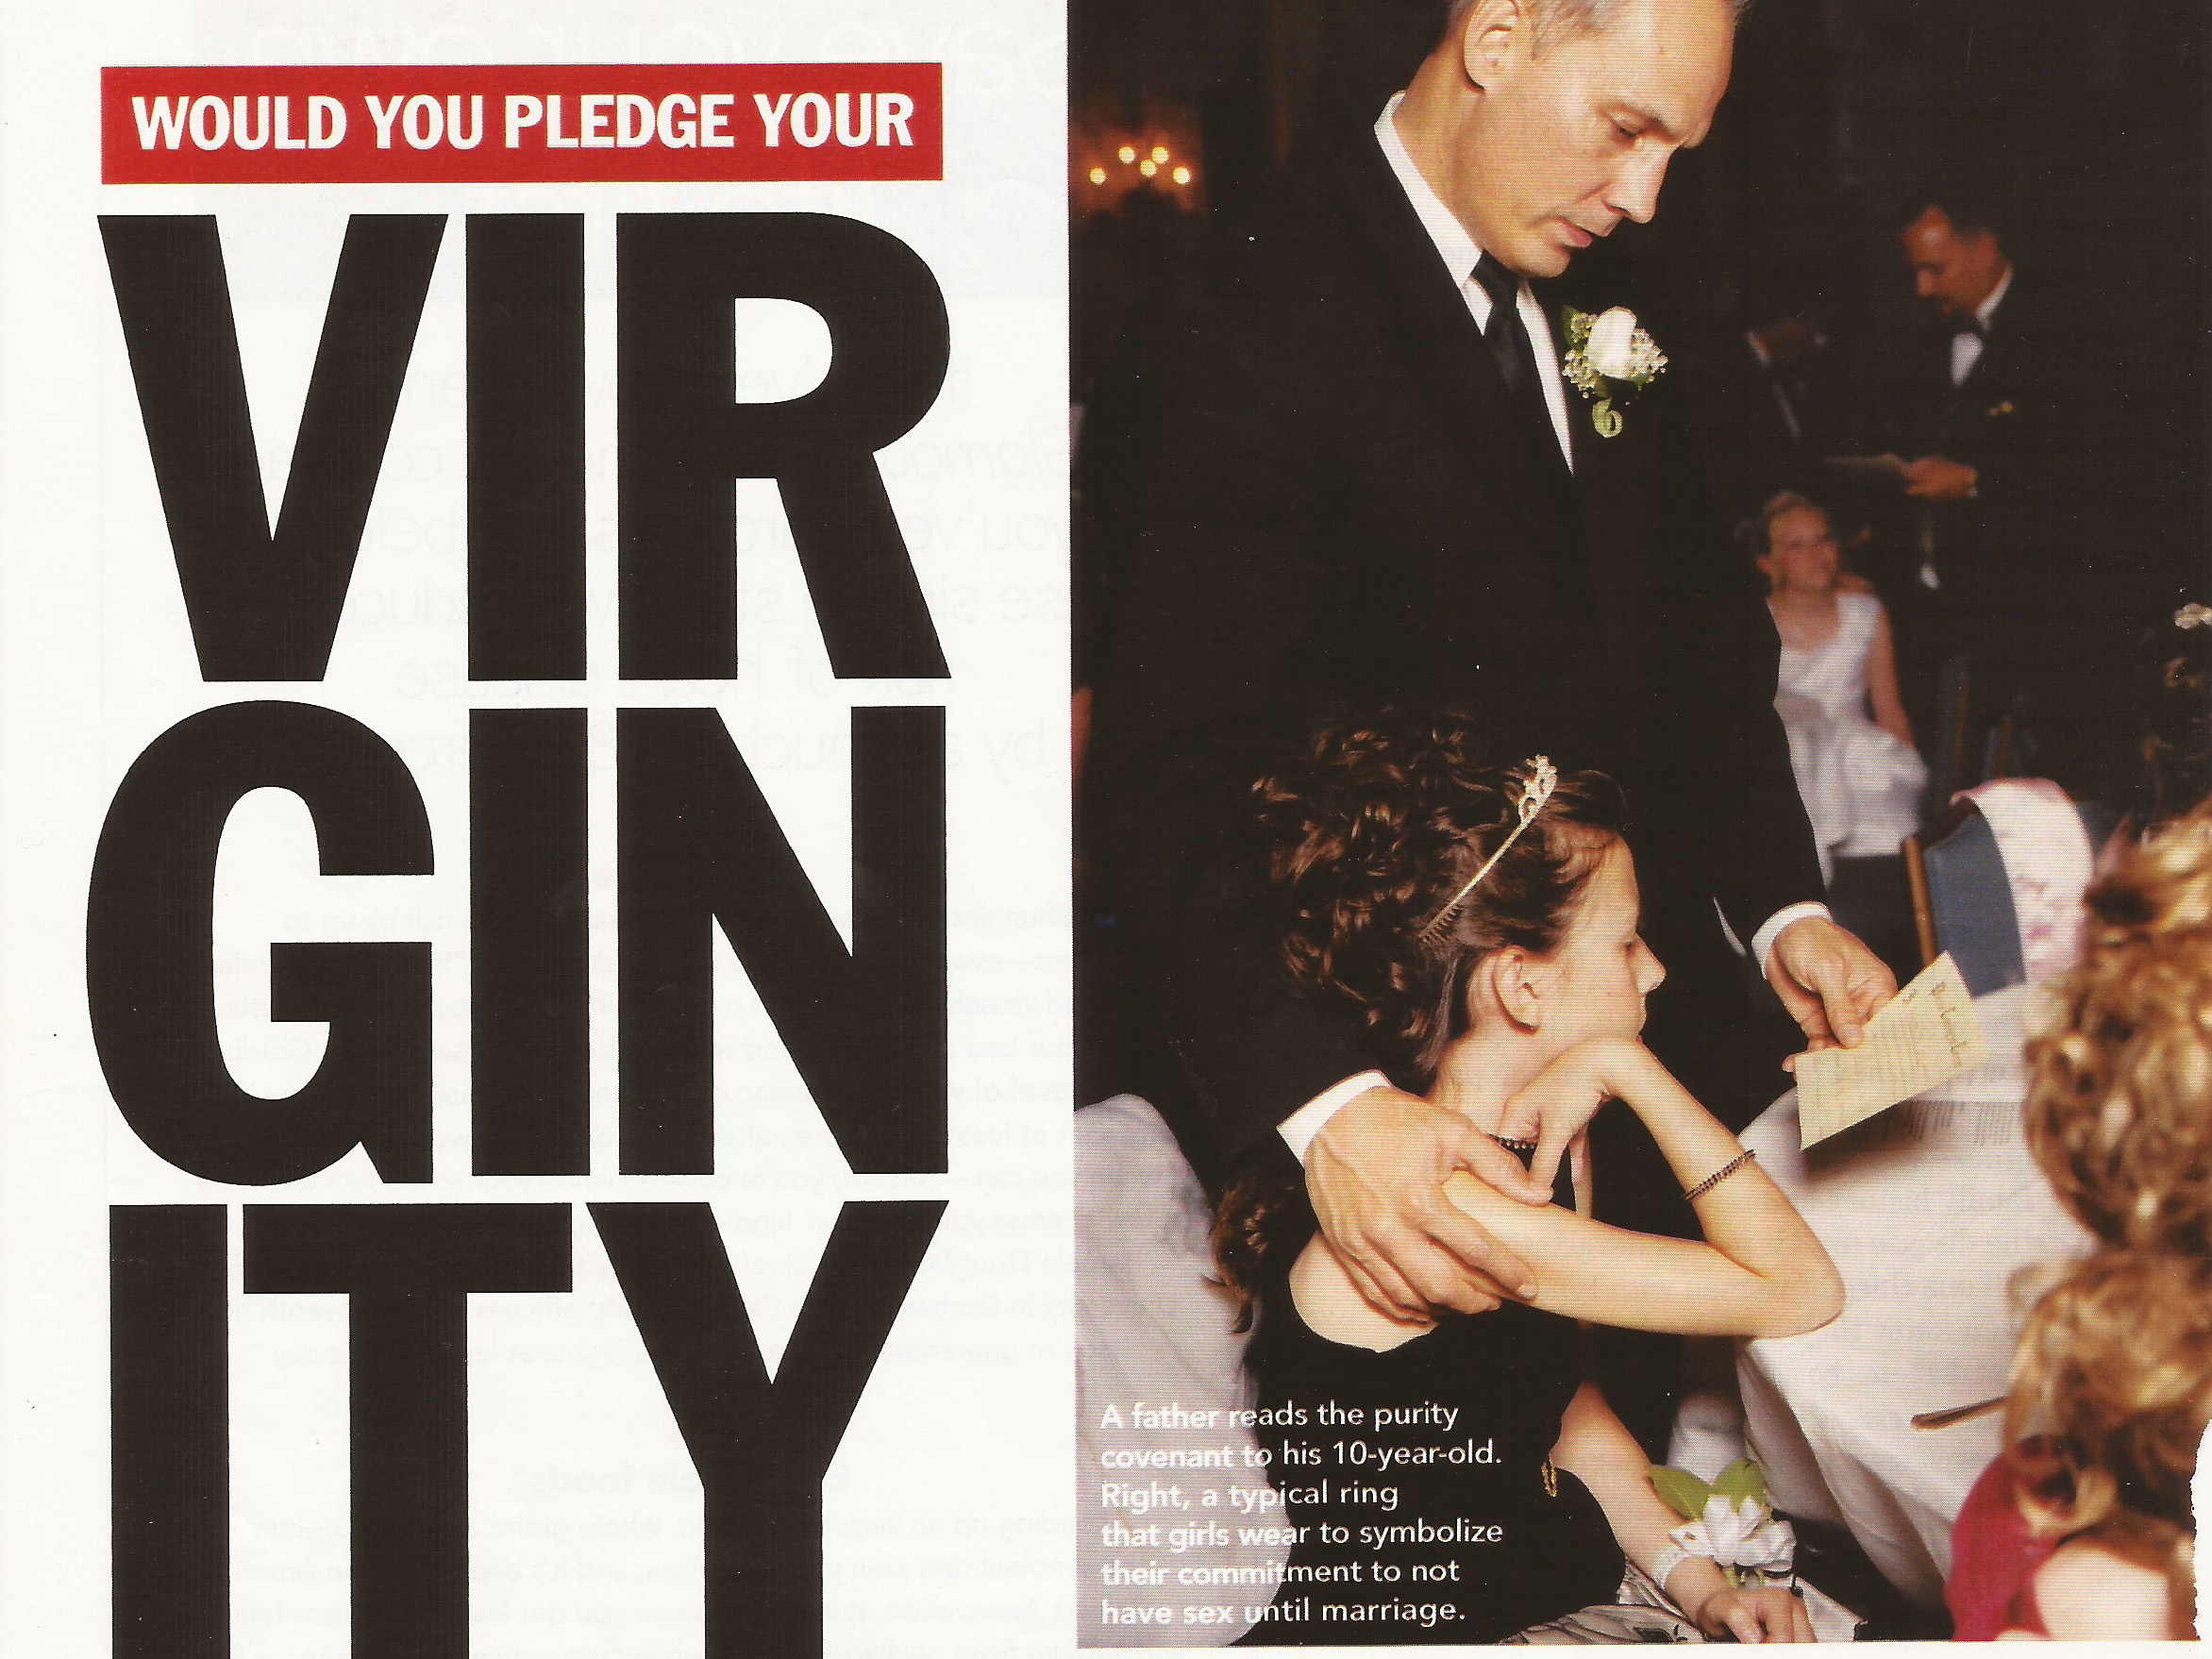 Would You Pledge Your Virginity to Your Father?  Glamour Magazine , February 2007